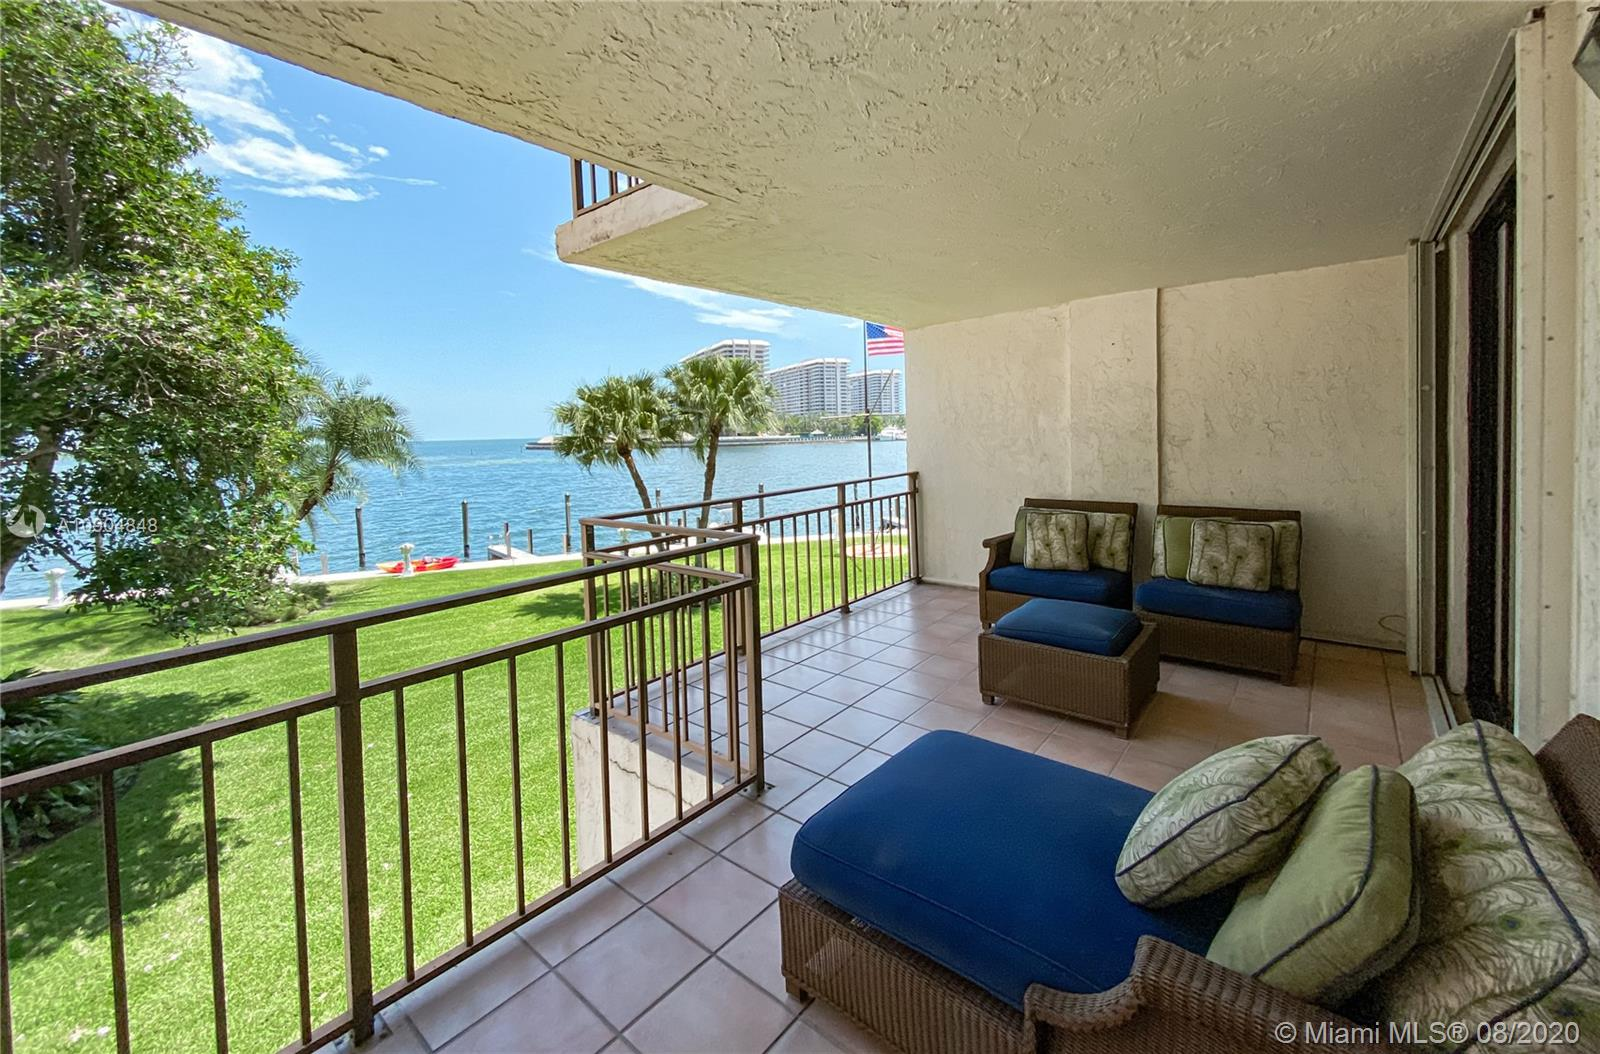 1632 S Bayshore Ct # 101, Miami, Florida 33133, 2 Bedrooms Bedrooms, ,2 BathroomsBathrooms,Residential,For Sale,1632 S Bayshore Ct # 101,A10904848